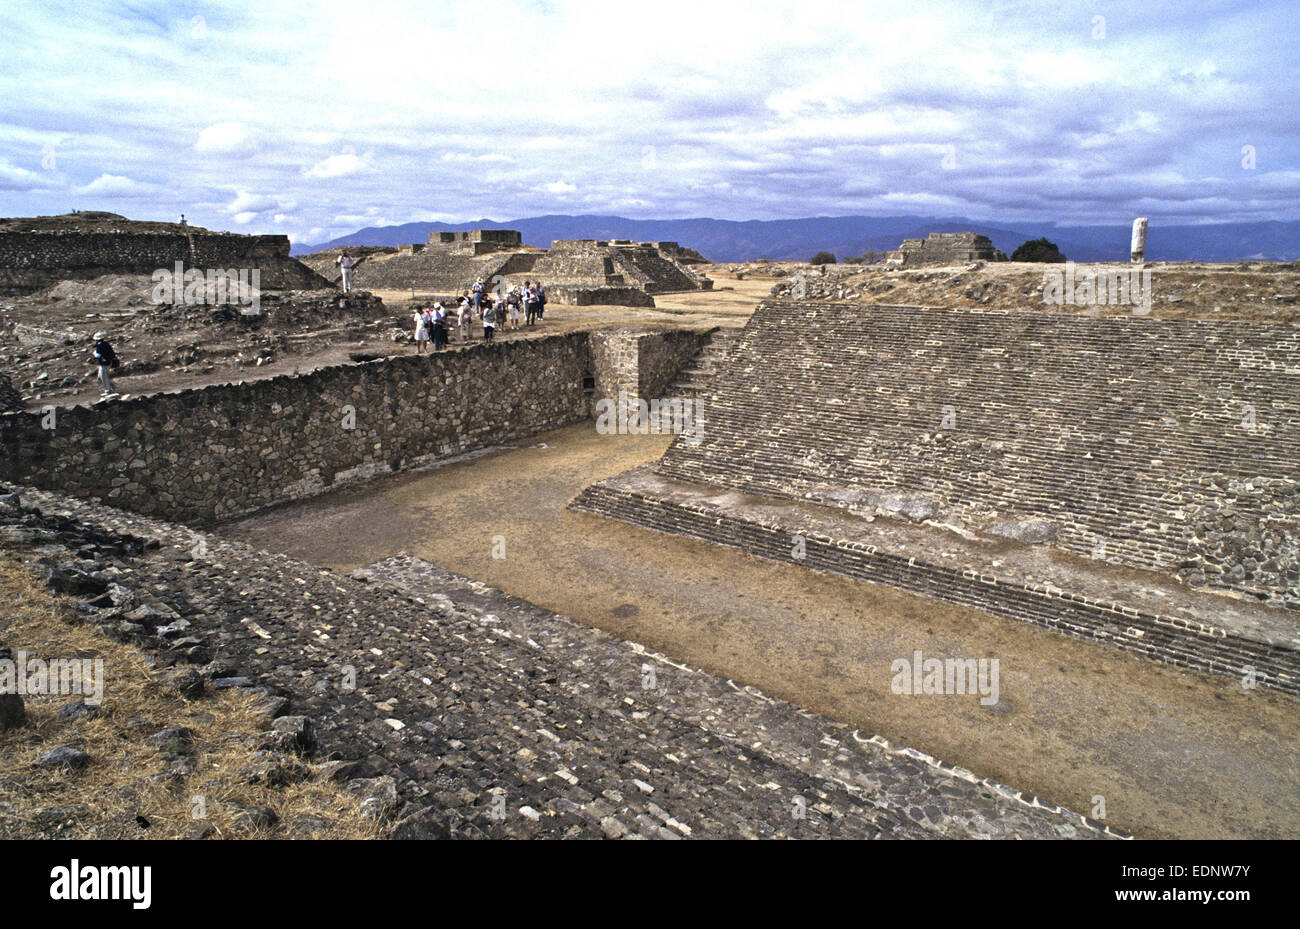 Treasures found at Monte Alban in Oaxaca, Mexico during excavations of the large pre-Columbian archaeological site. - Stock Image